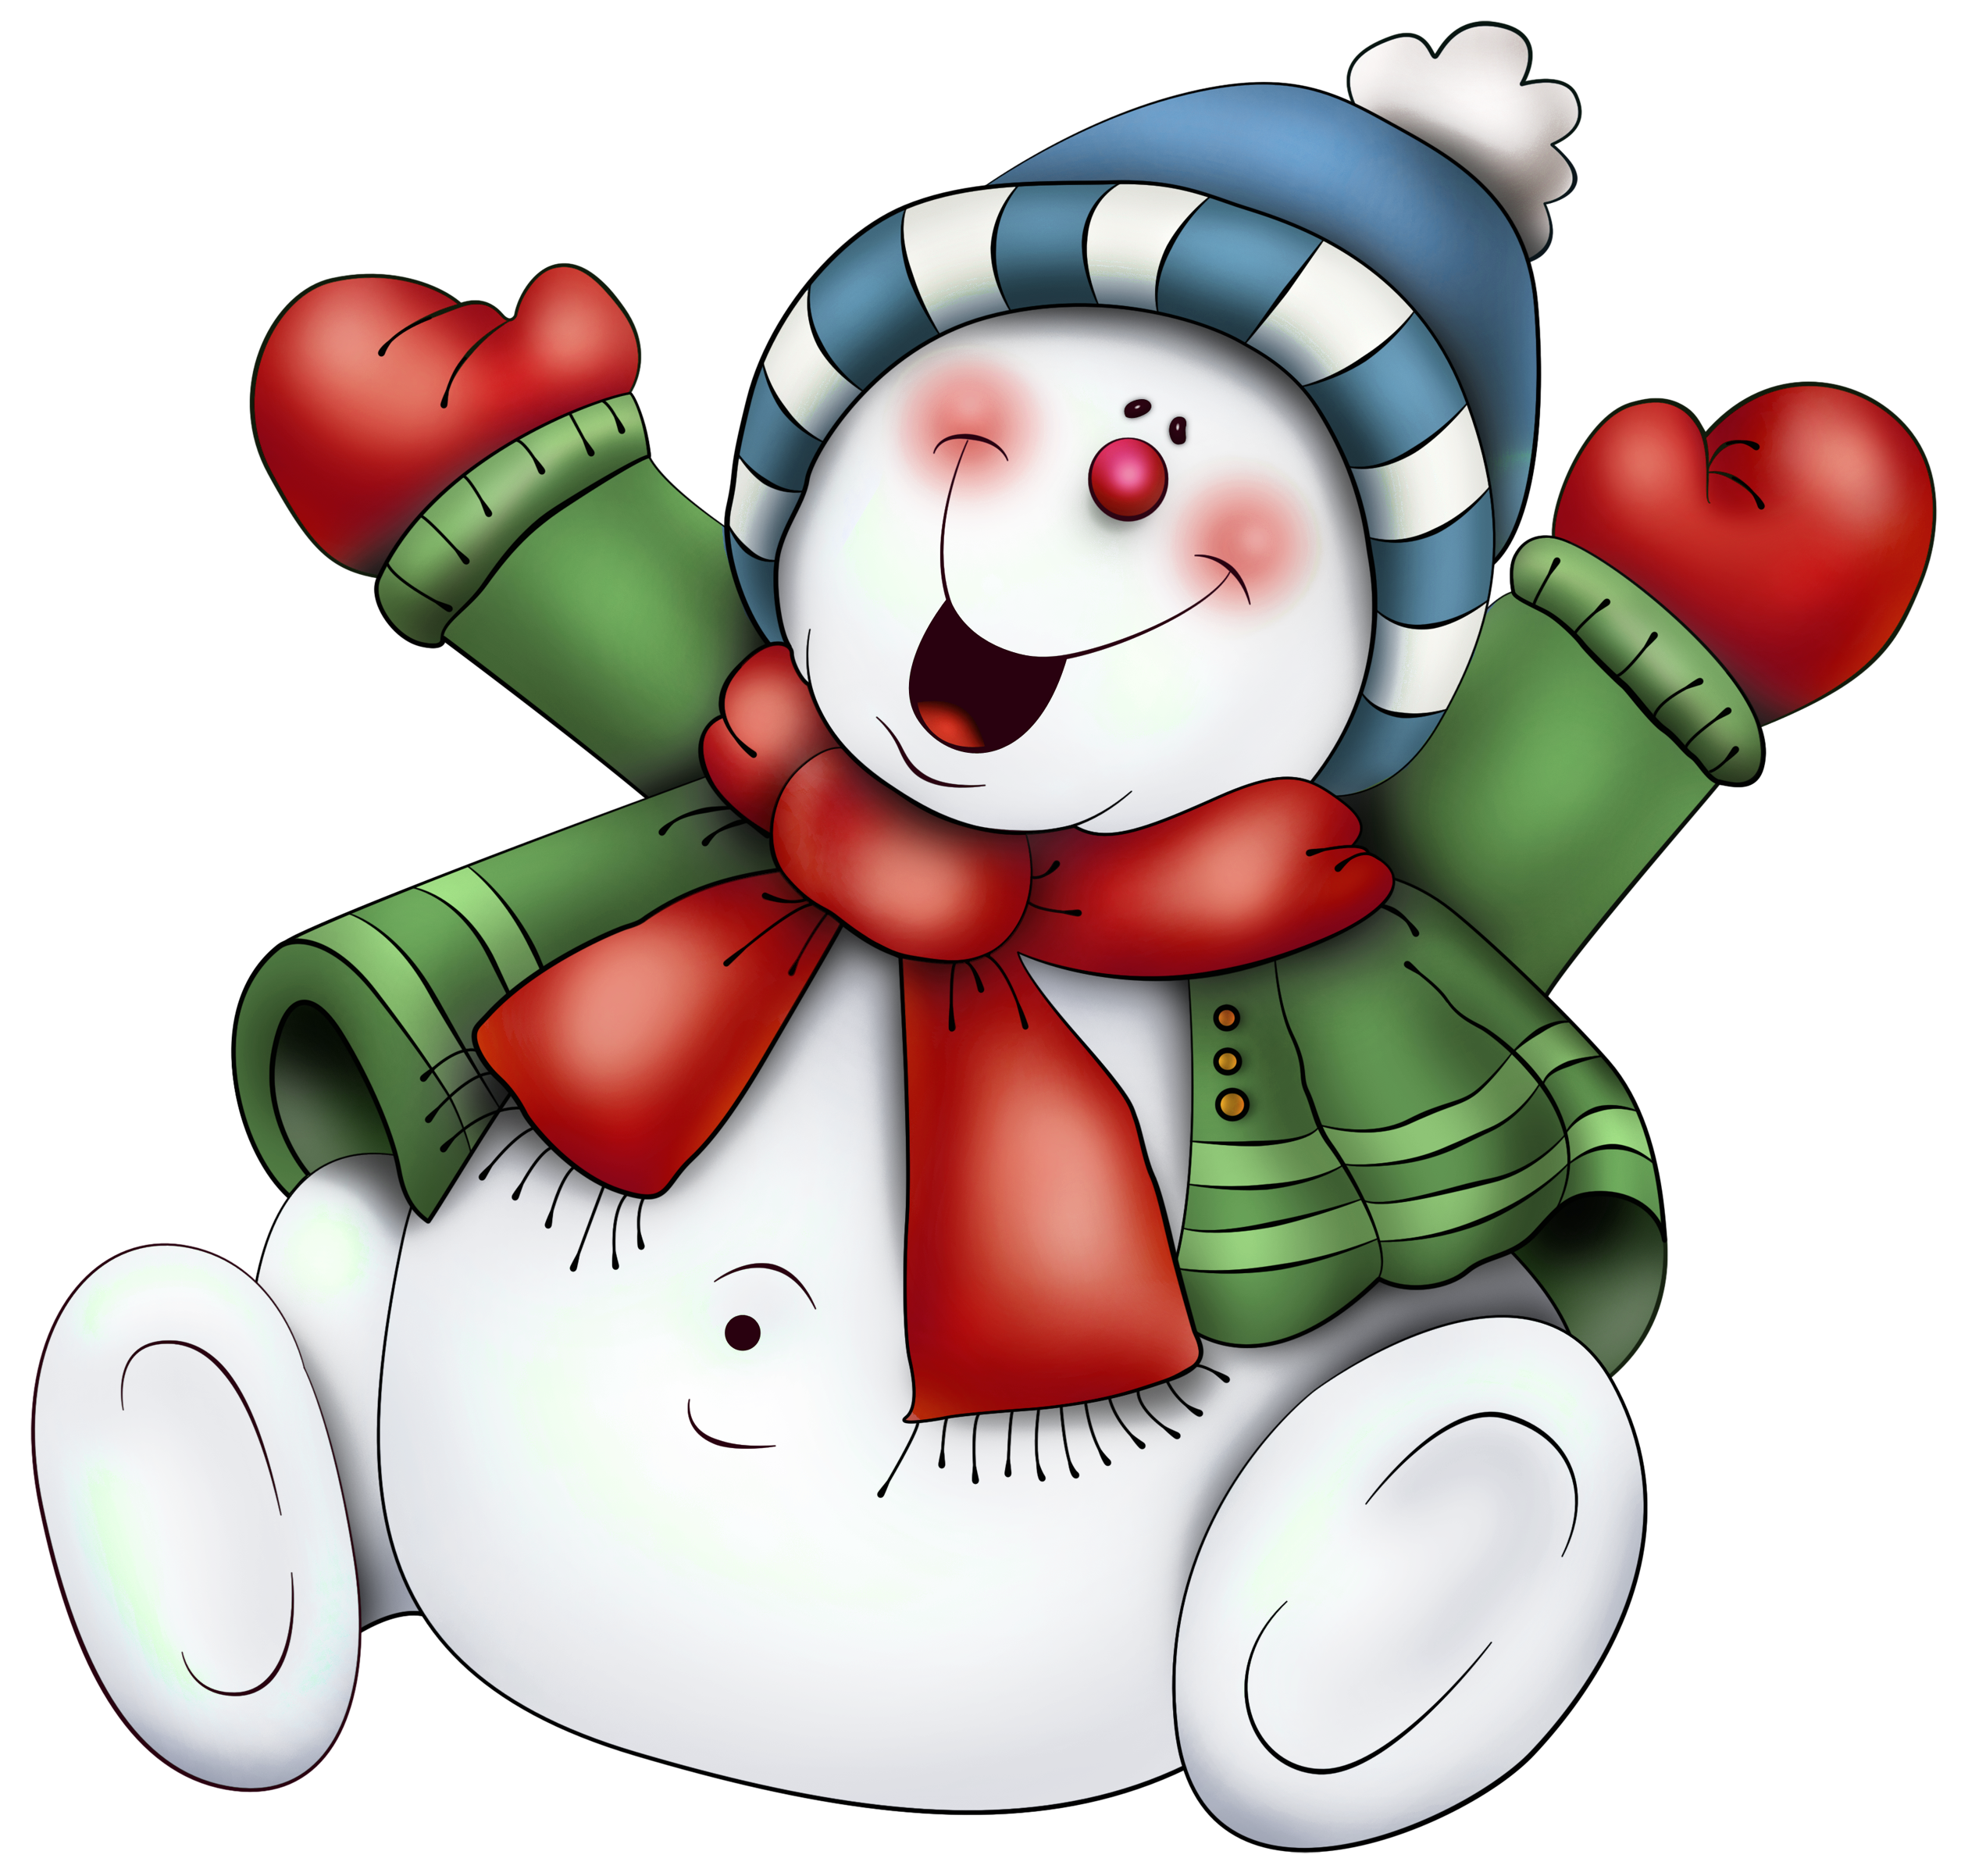 png free download With scarf png use. Snowman border clipart